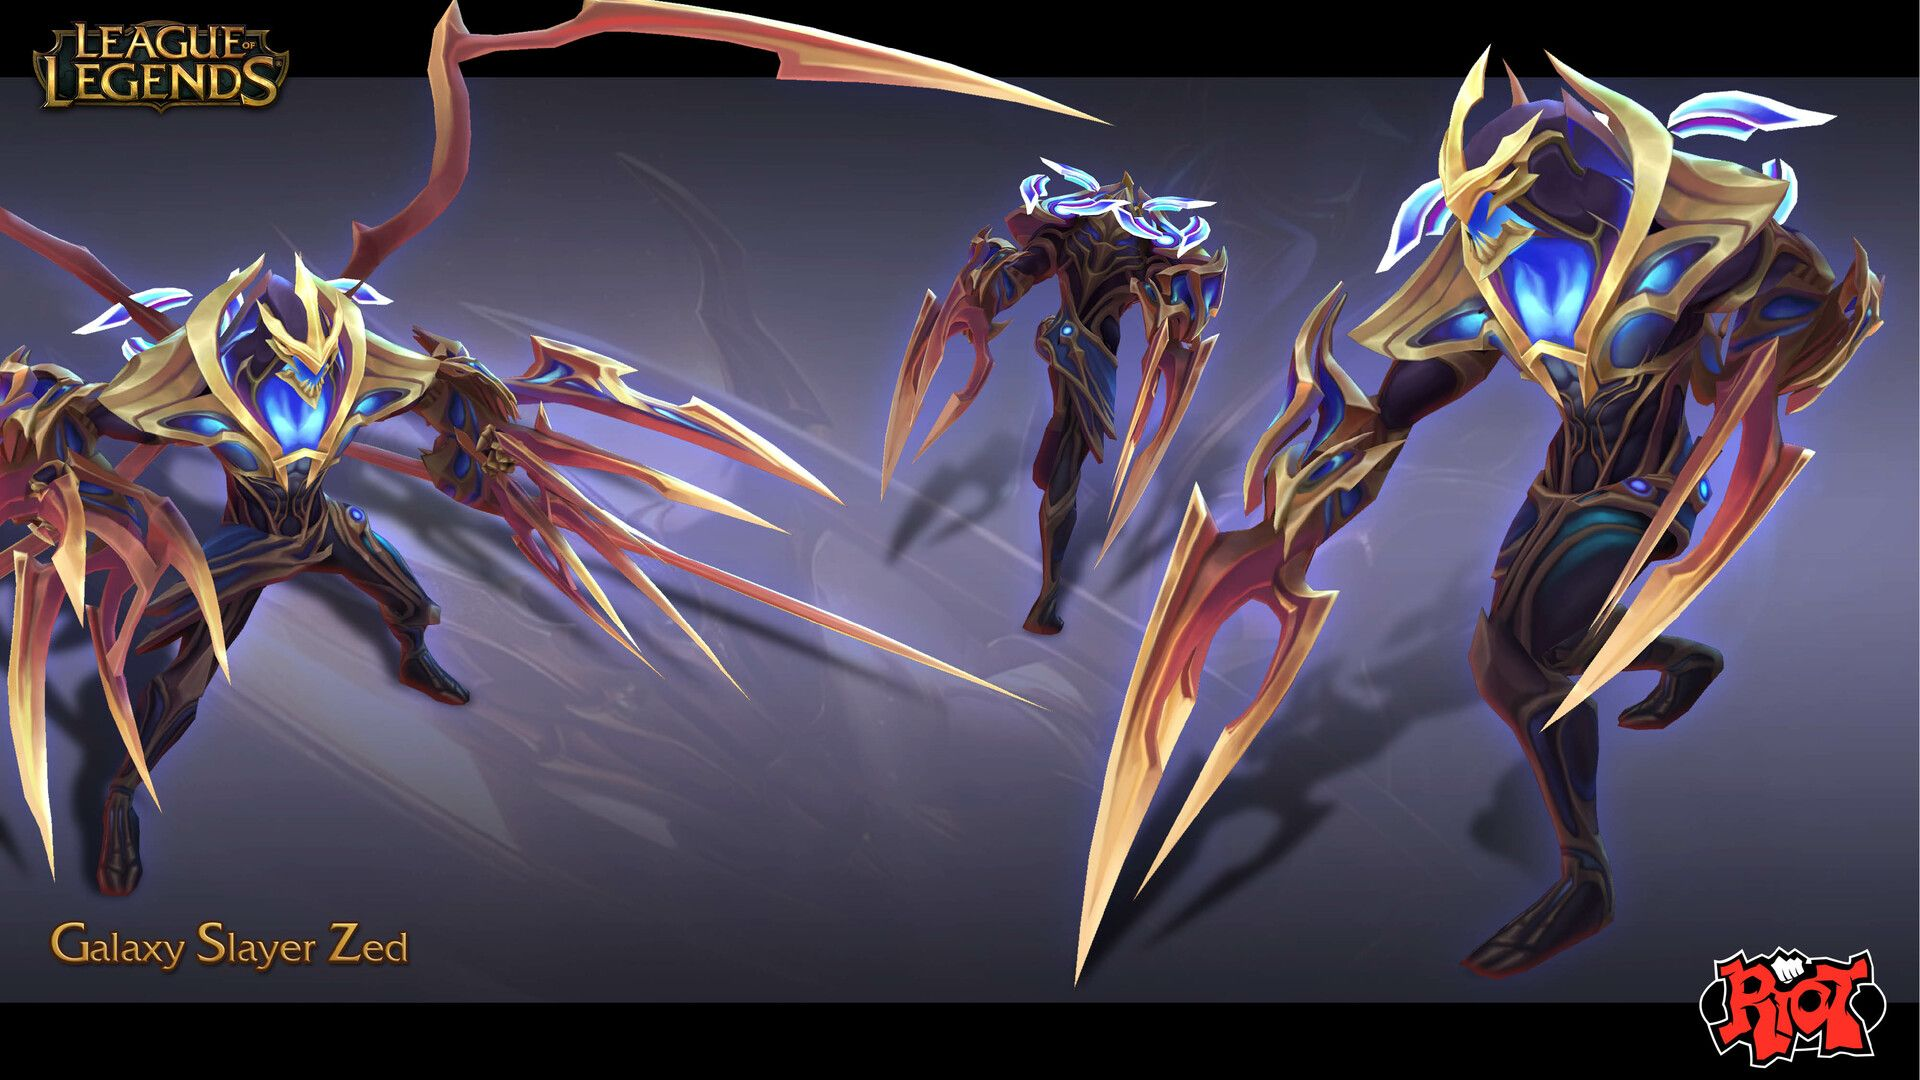 Artstation Galaxy Slayer Zed Duy Khanh Nguyen In 2020 League Of Legends Game League Of Legends Characters League Of Legends